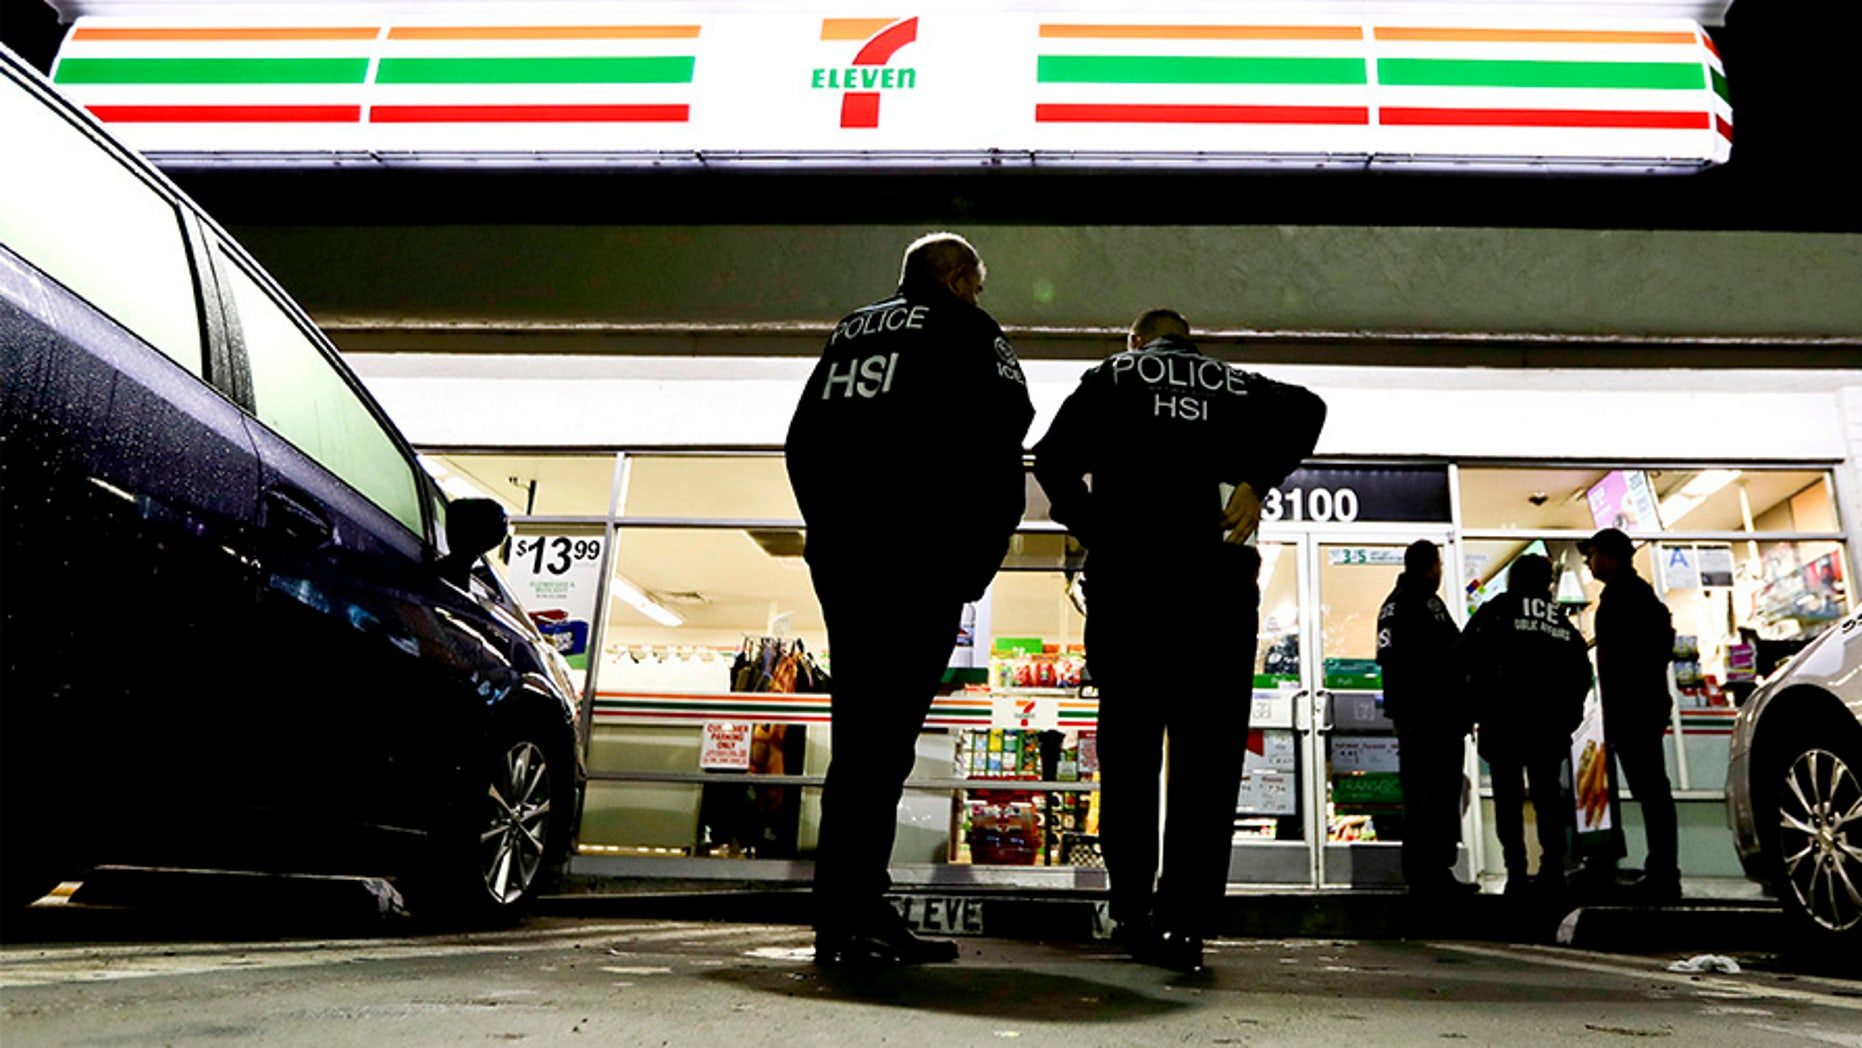 U.S. Immigration and Customs Enforcement agents aid they targeted about 100 7-Eleven stores nationwide Wednesday to open employment audits and interview workers.